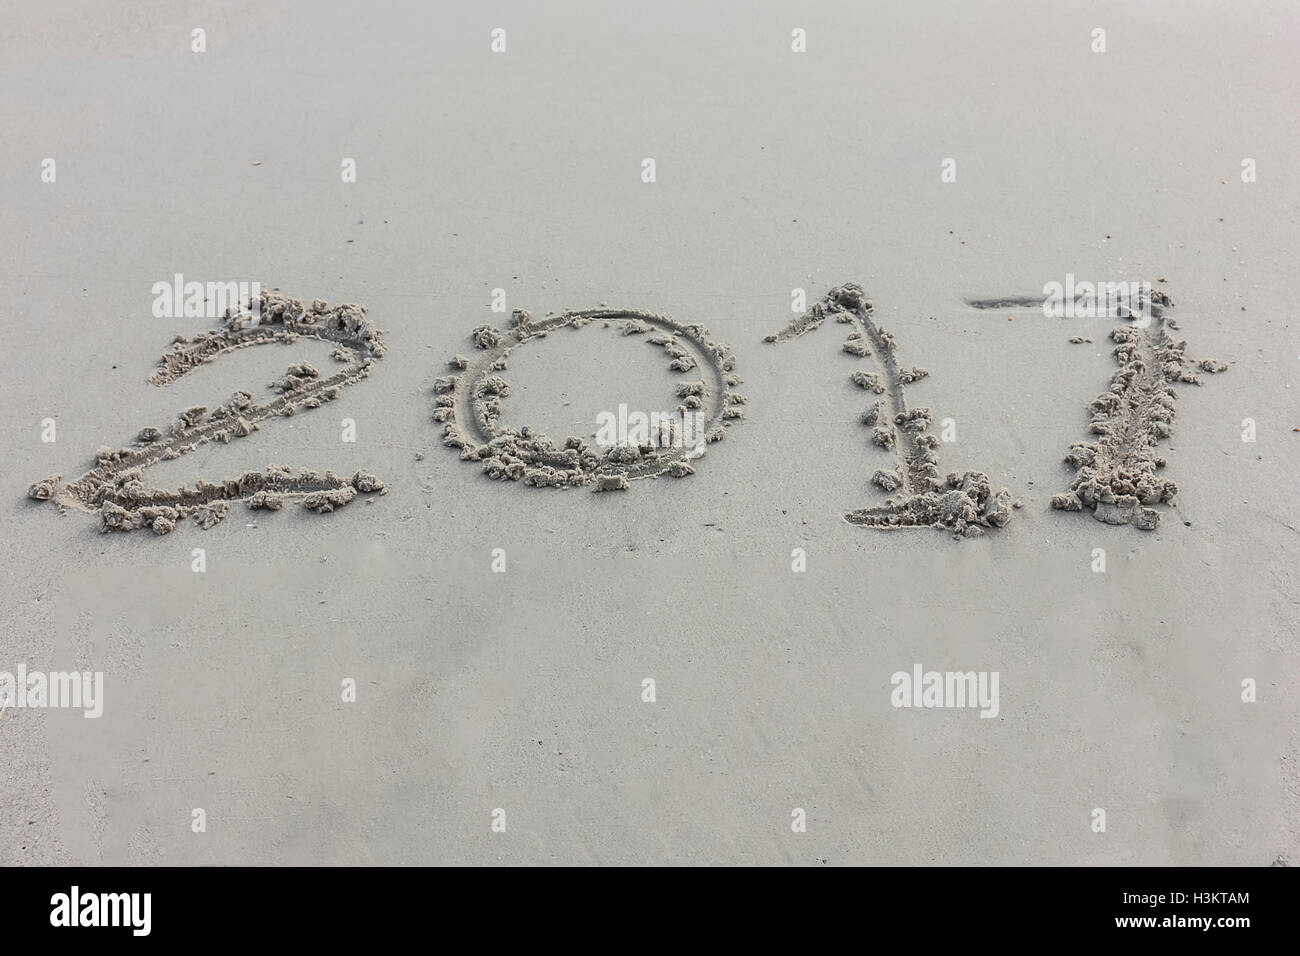 digits of the year on the sand songkhla thailand - Stock Image